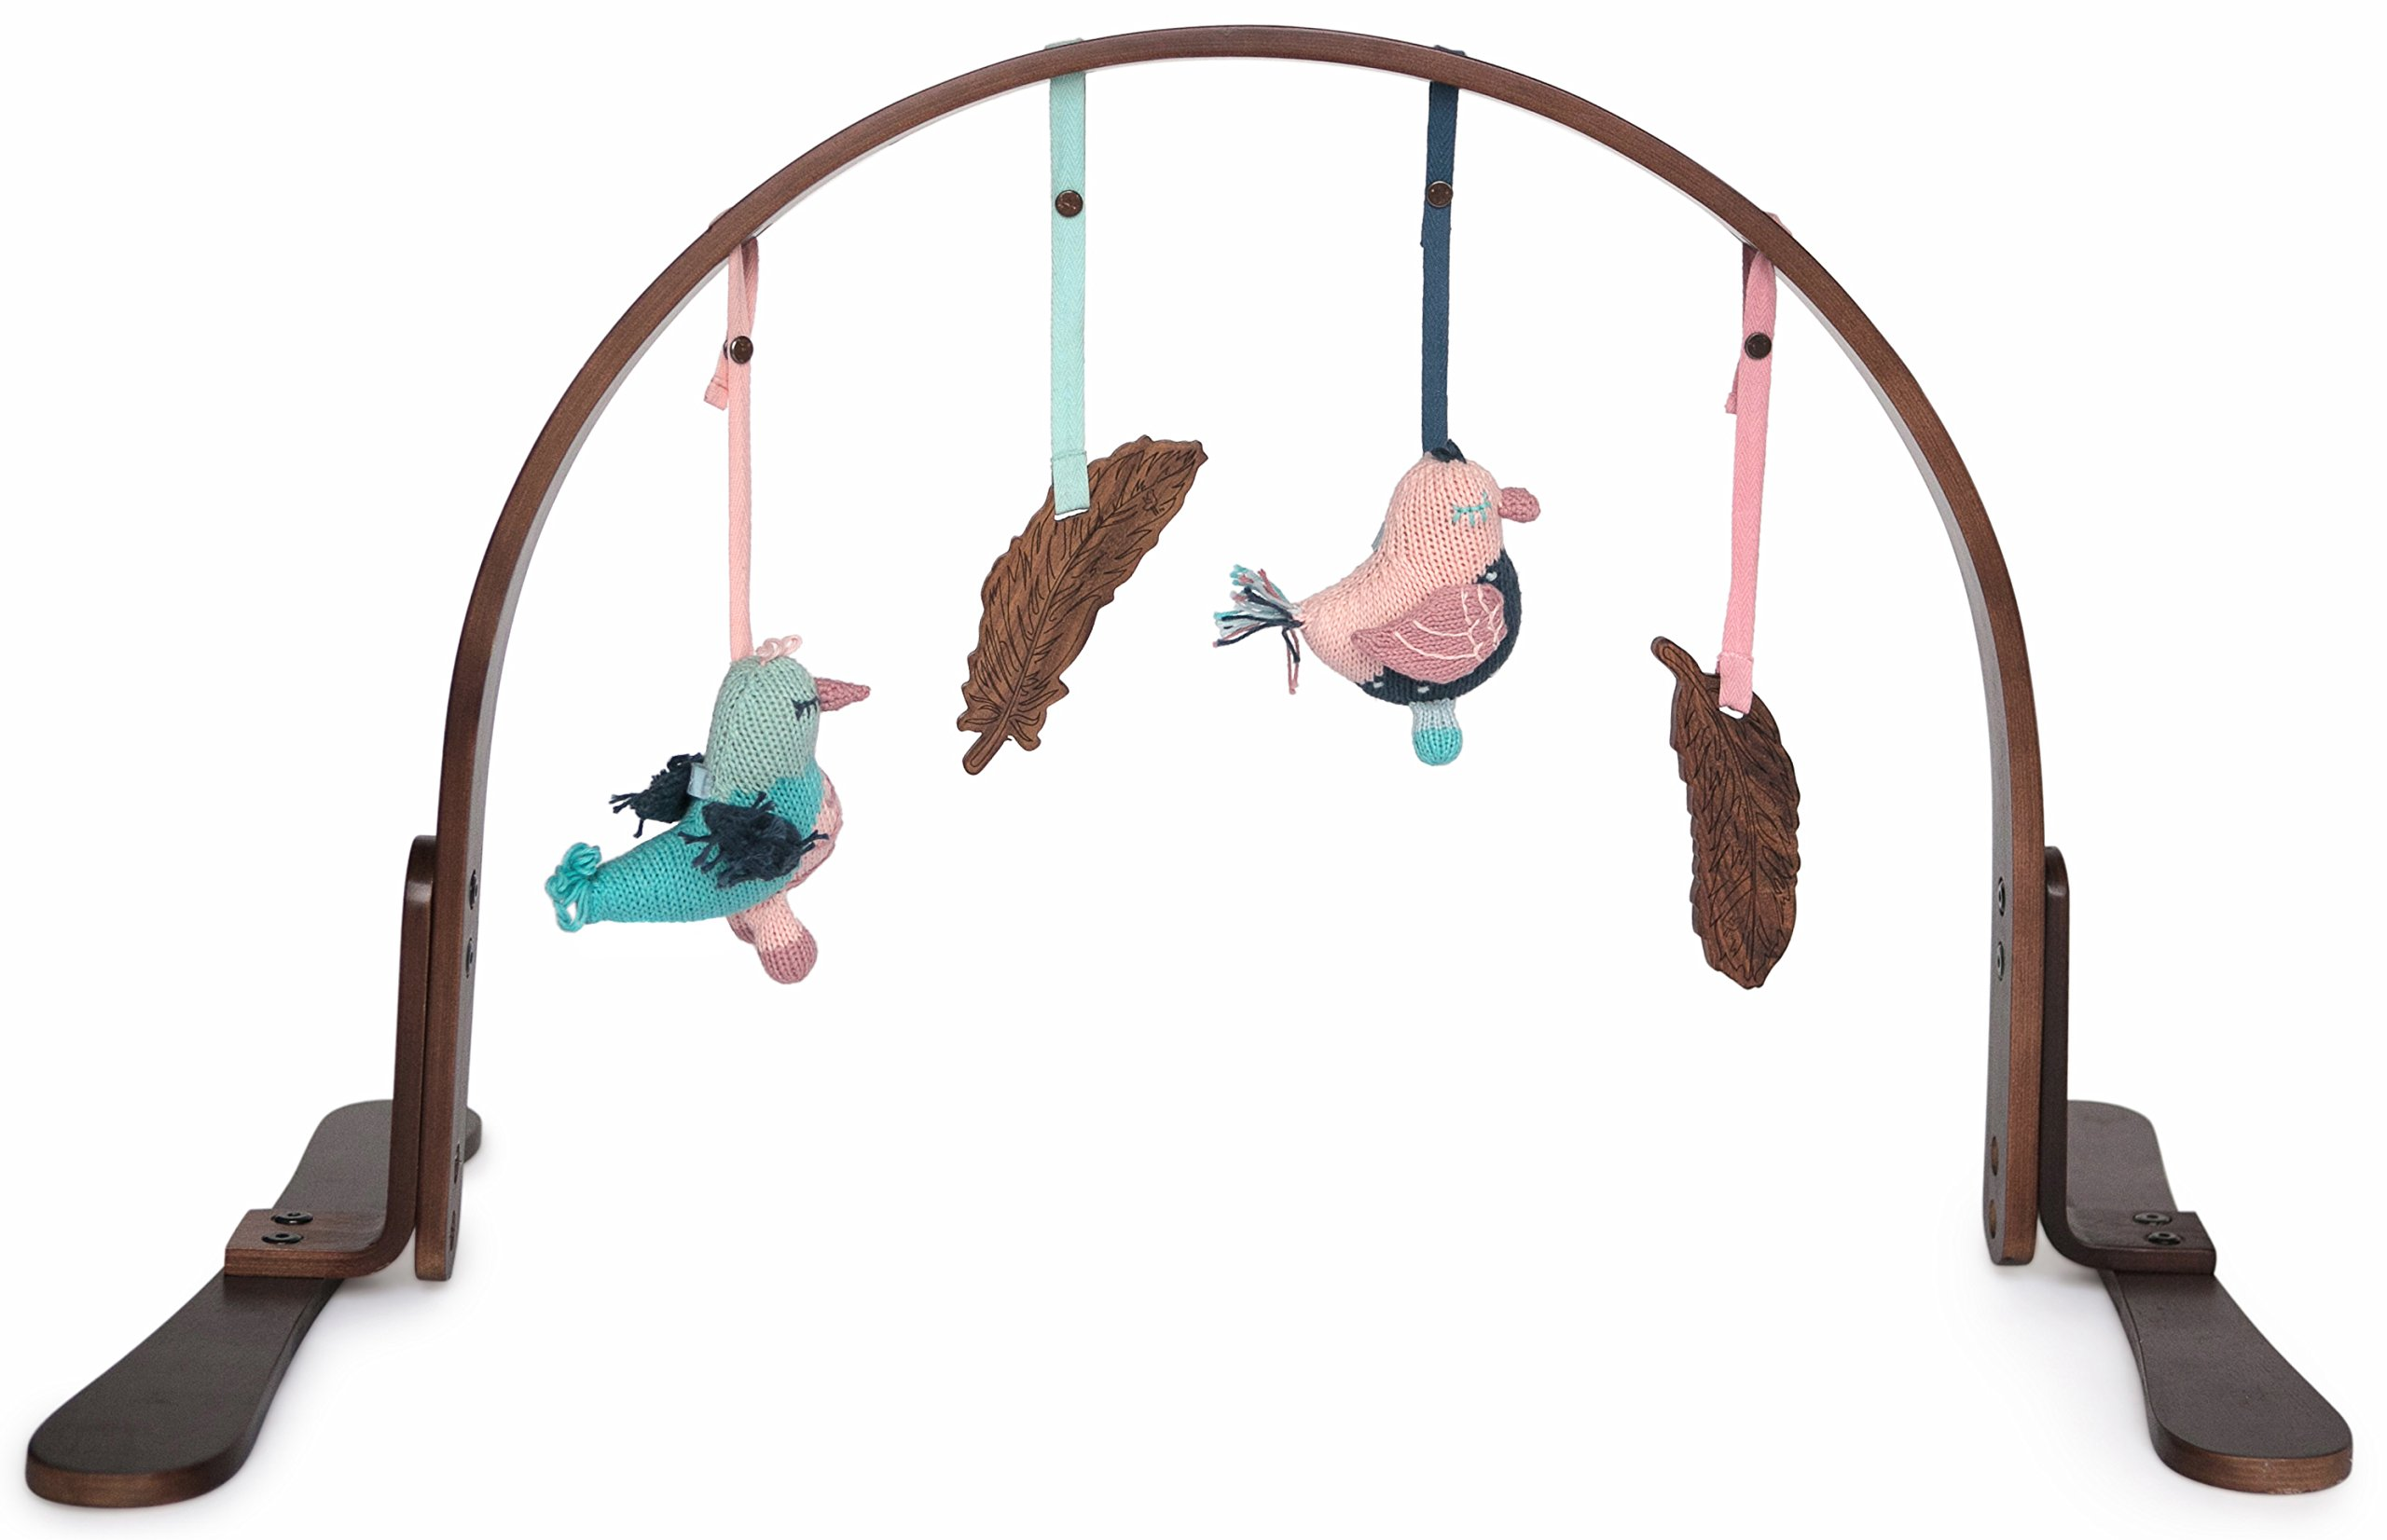 Finn + Emma Play Gym, Organic Cotton and Natural Wood with Hand-Knit Rattle and Teether Stroller Toys for Baby Boy or Girl – Feather - Dark